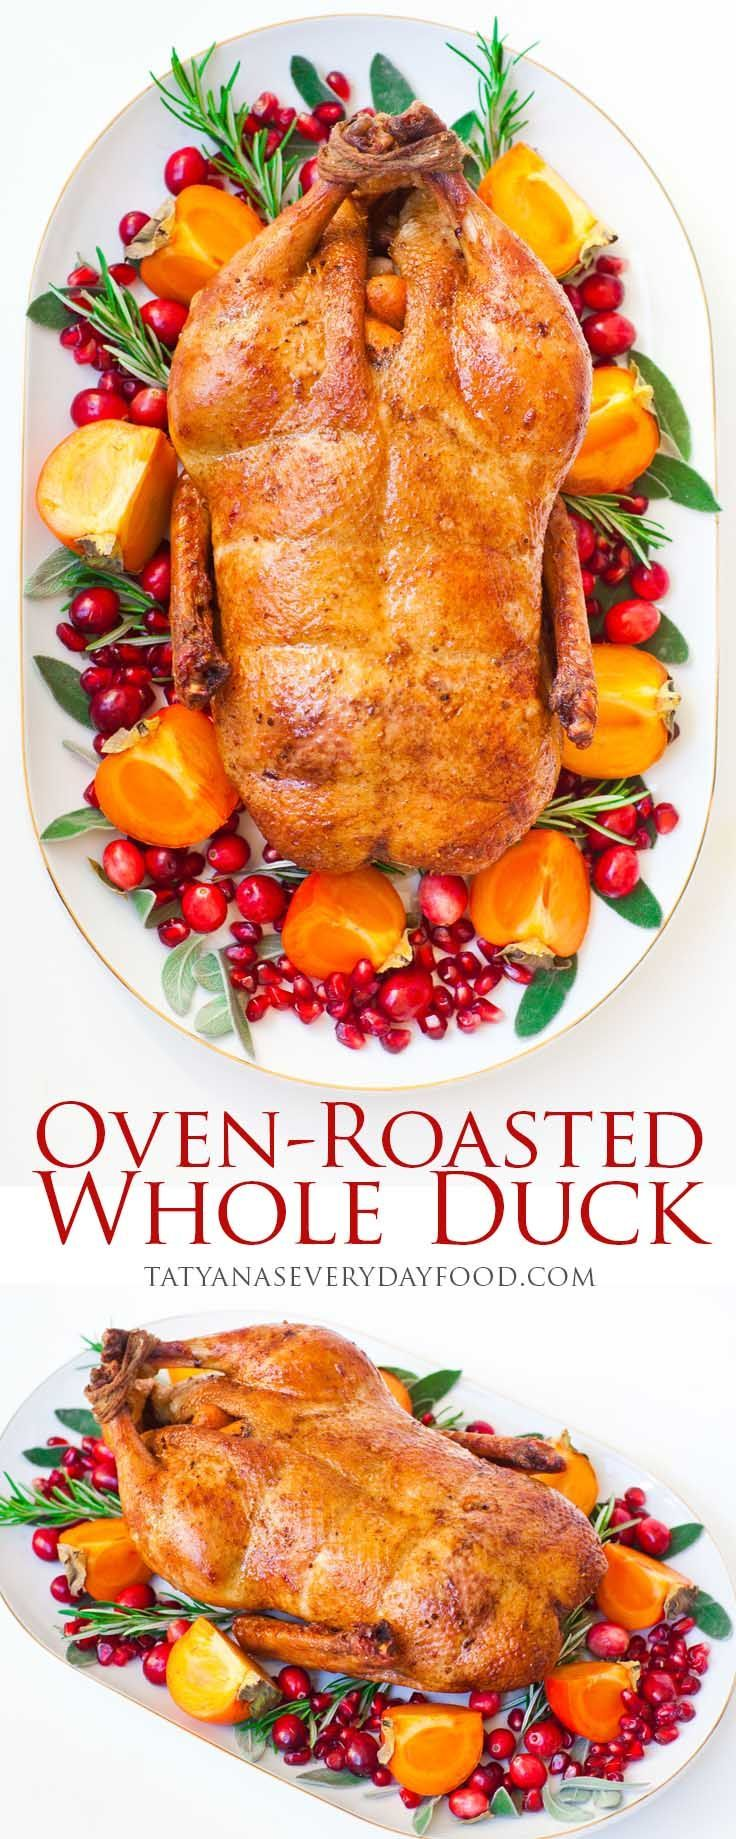 Oven-Roasted Whole Duck with video recipe